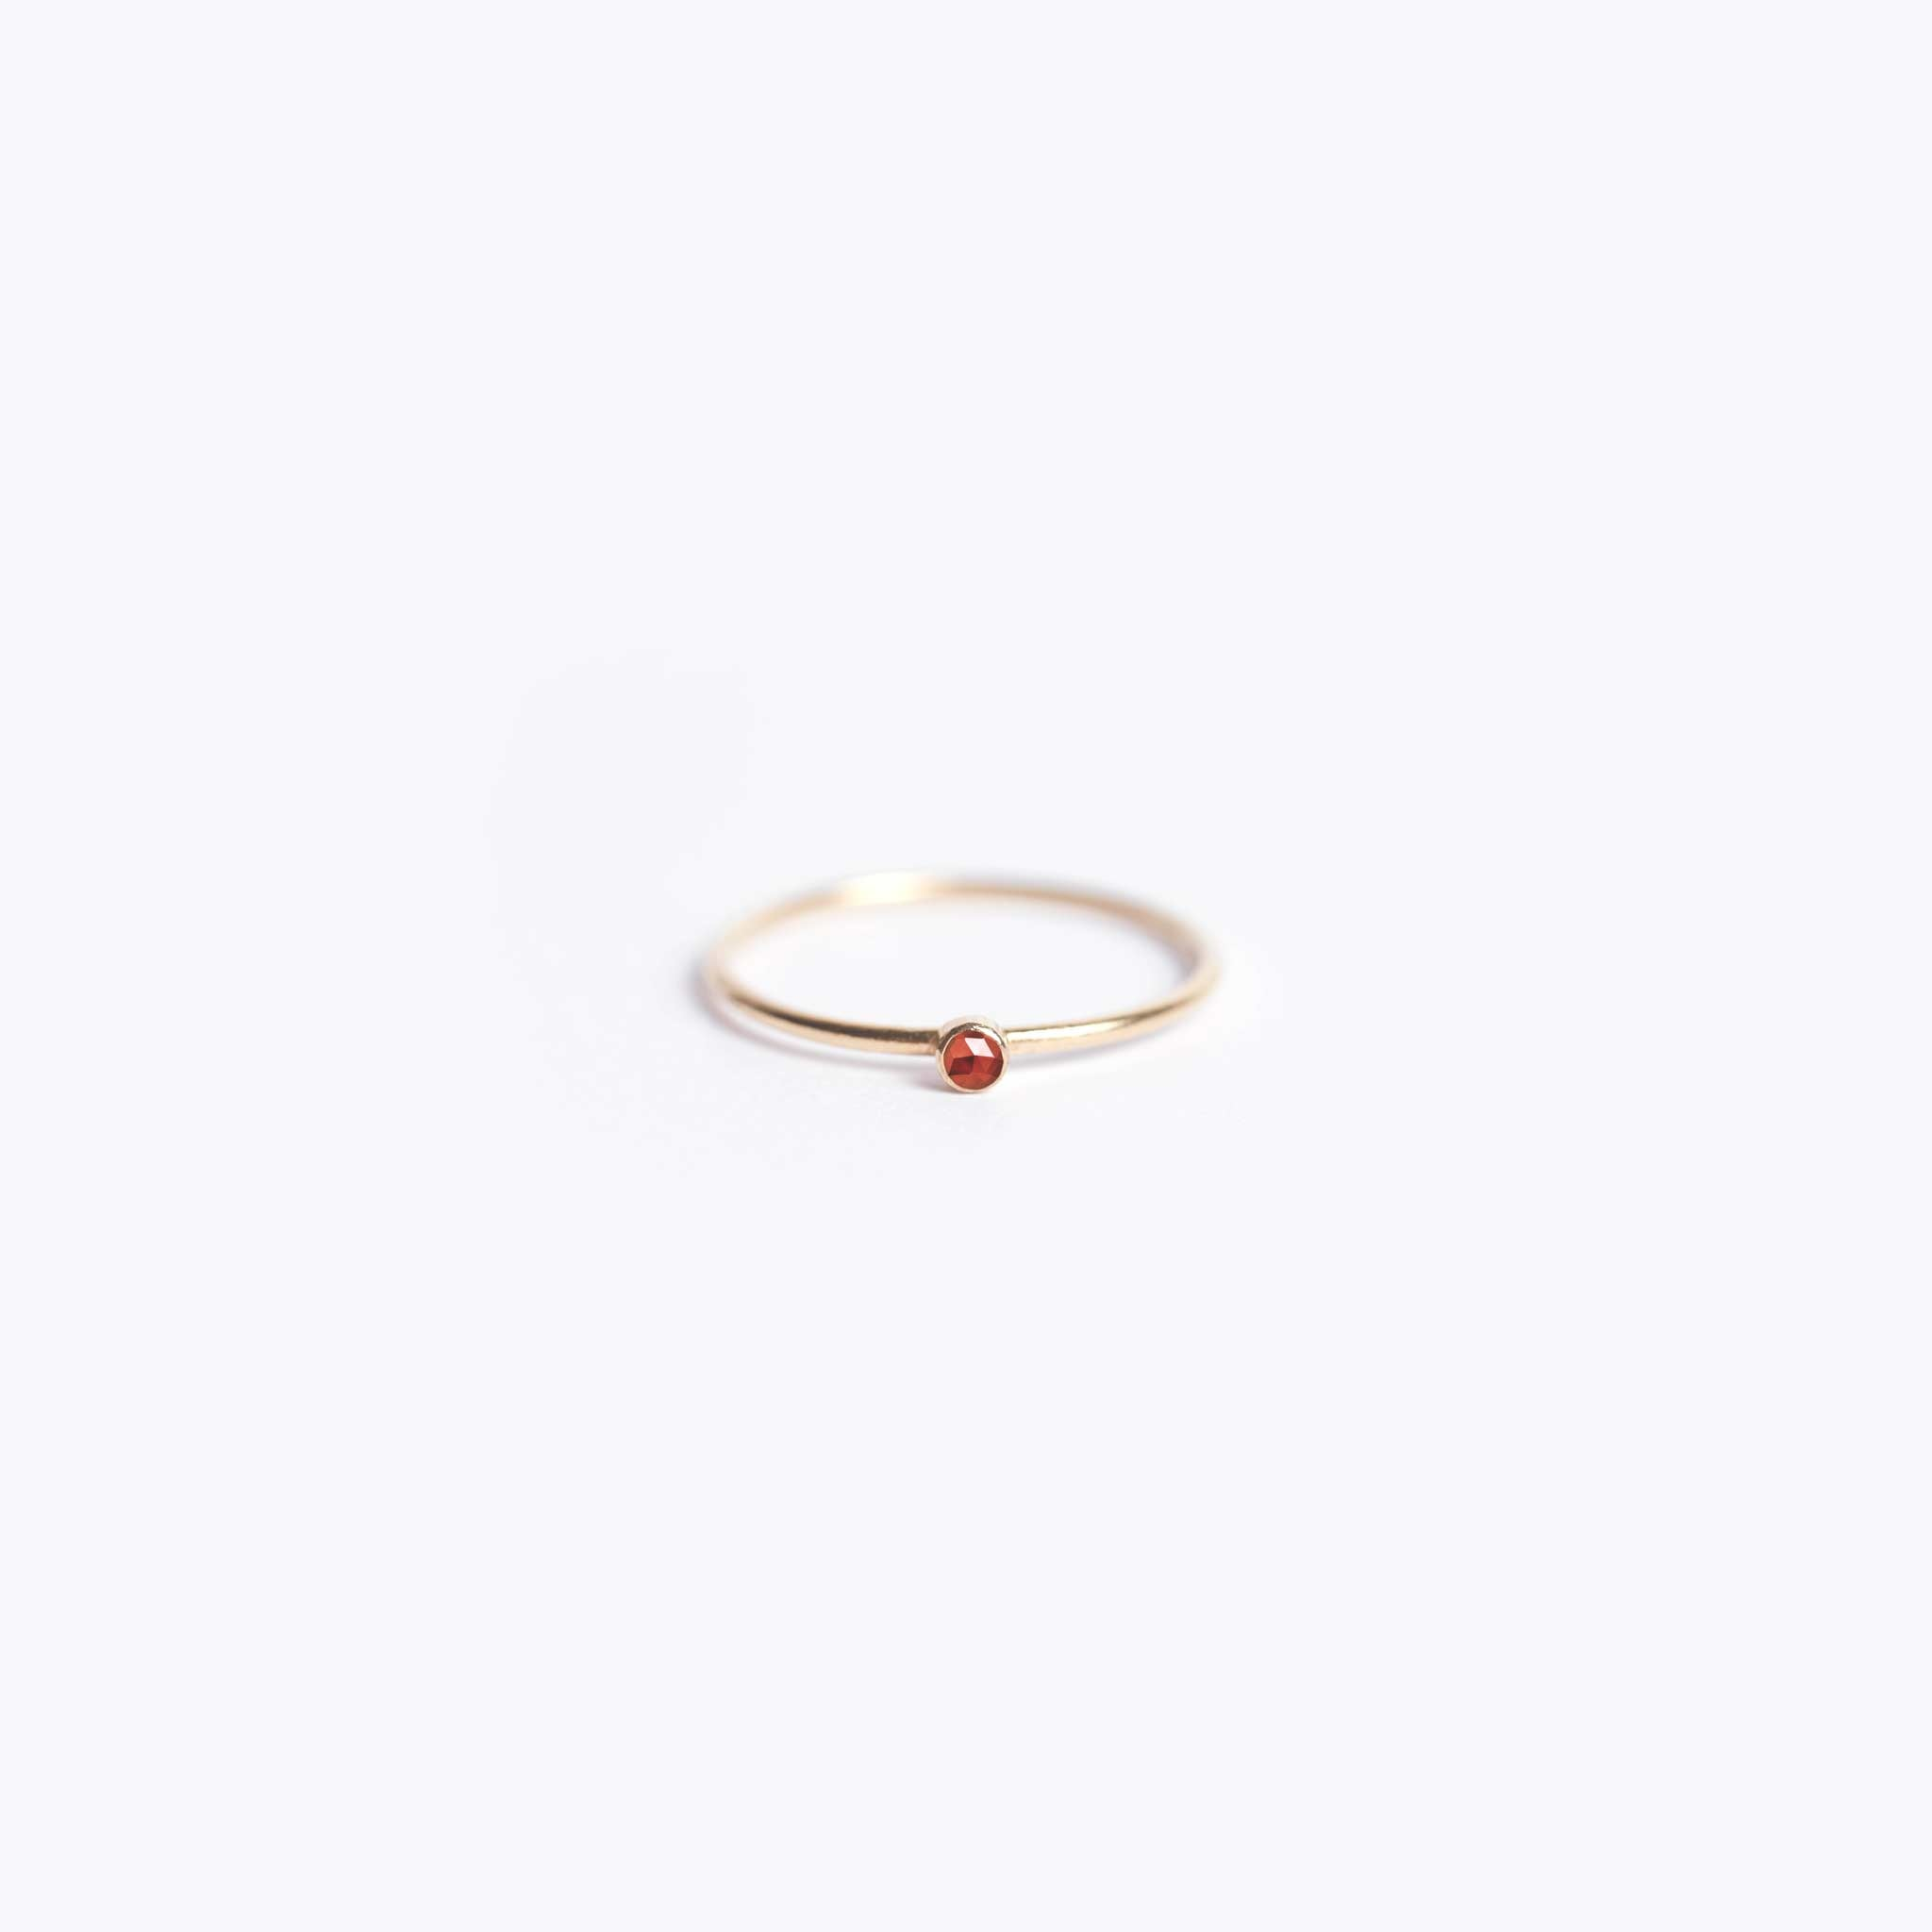 Wanderlust Life Ethically Handmade jewellery made in the UK. Minimalist gold and fine cord jewellery. january birthstone, fine gold garnet ring